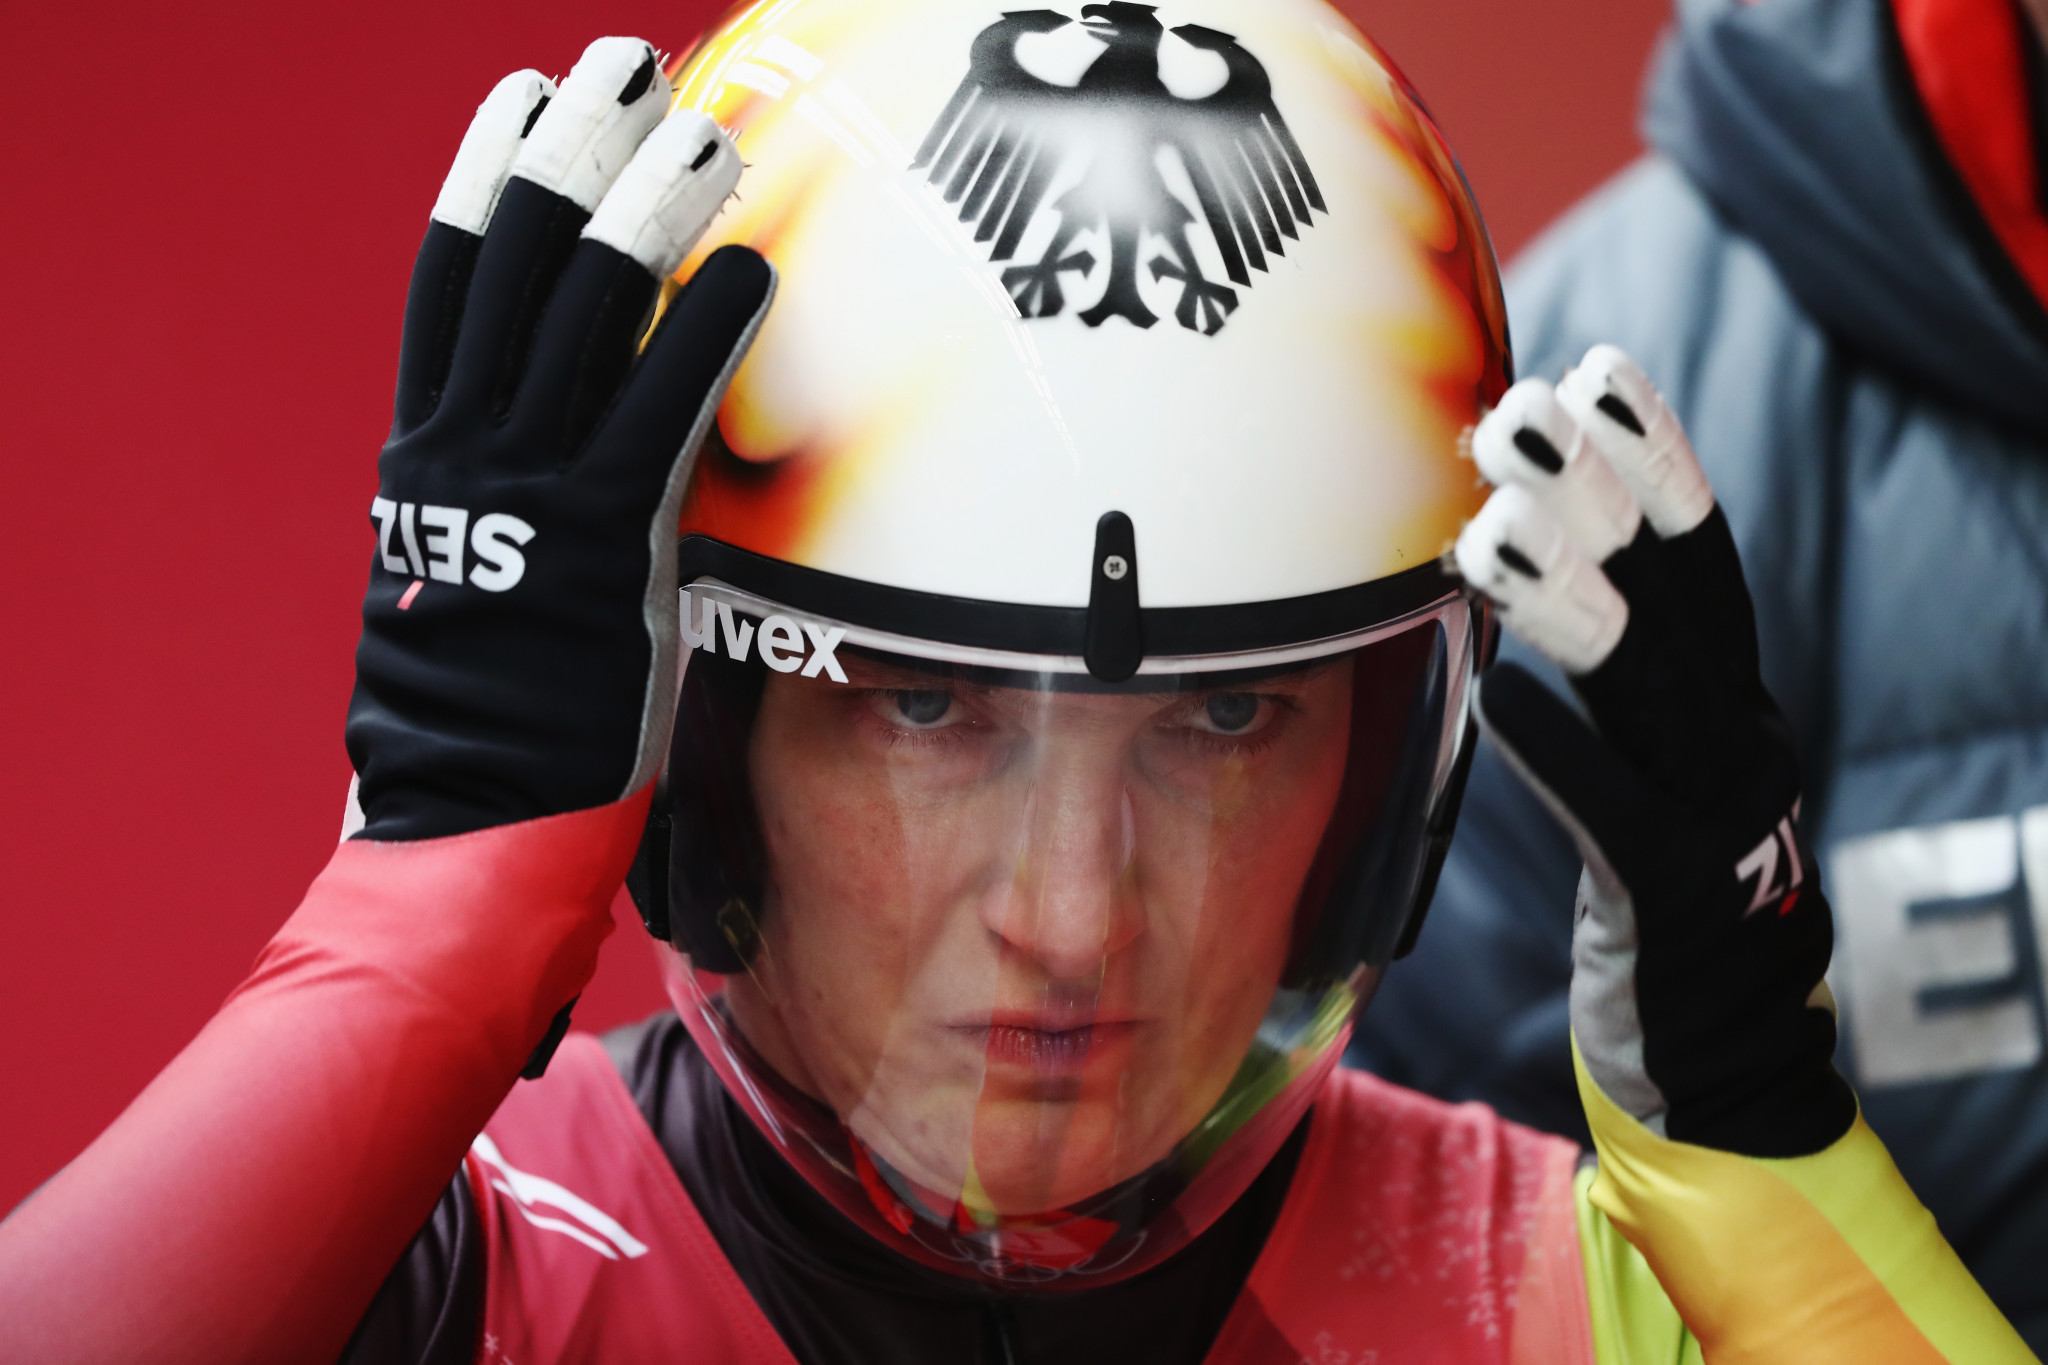 Olympic luge gold medallist Hüfner takes coaching role in Italy